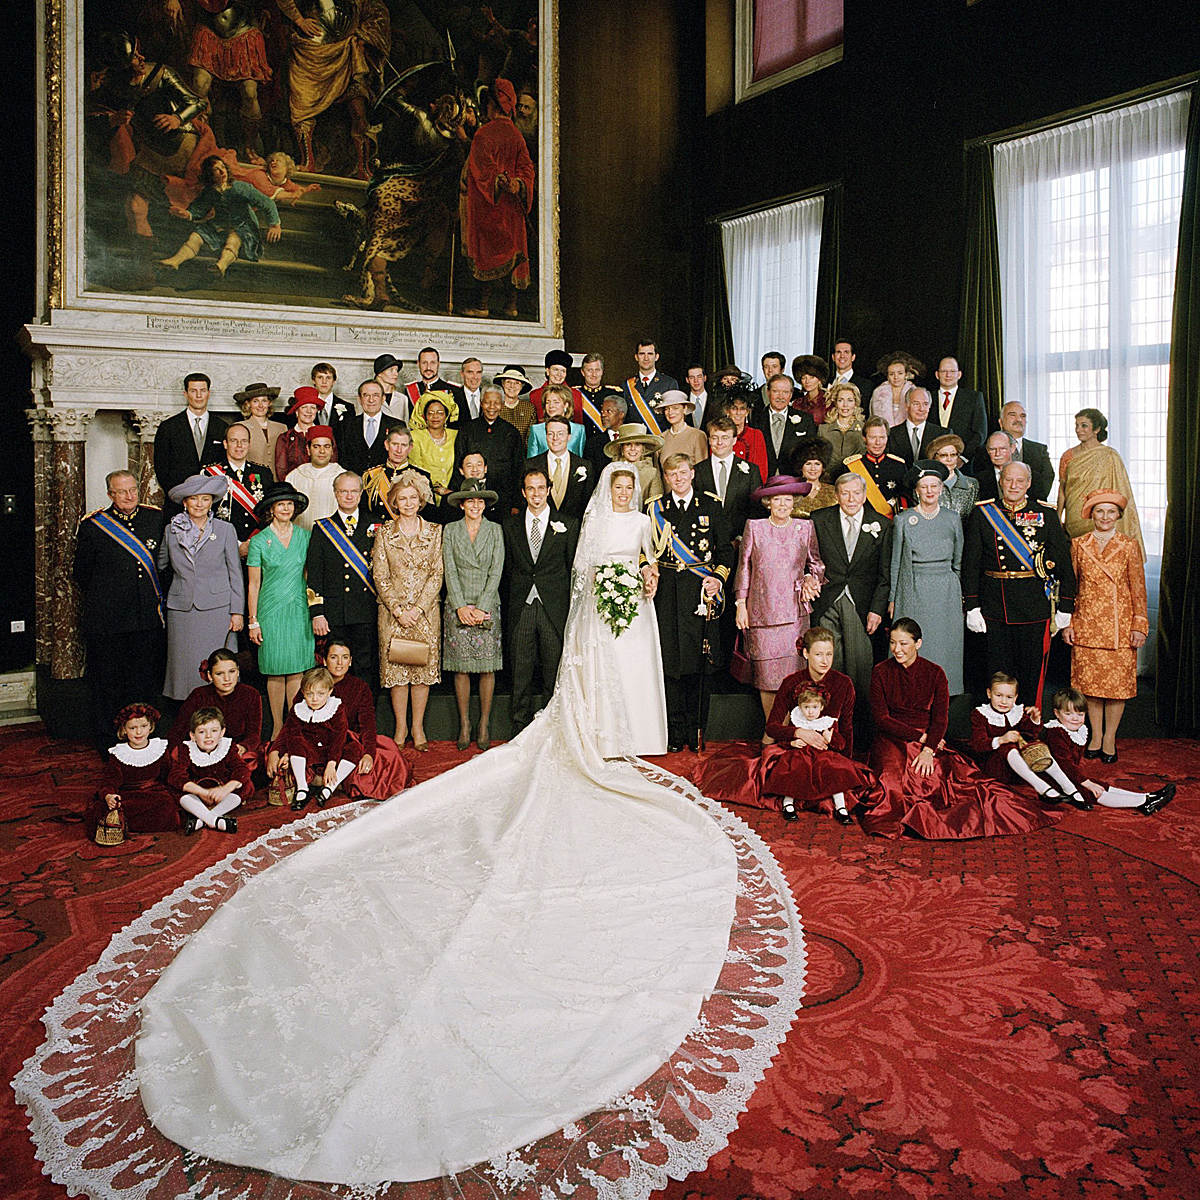 Royal wedding   Marriage   Royal House of the Netherlands